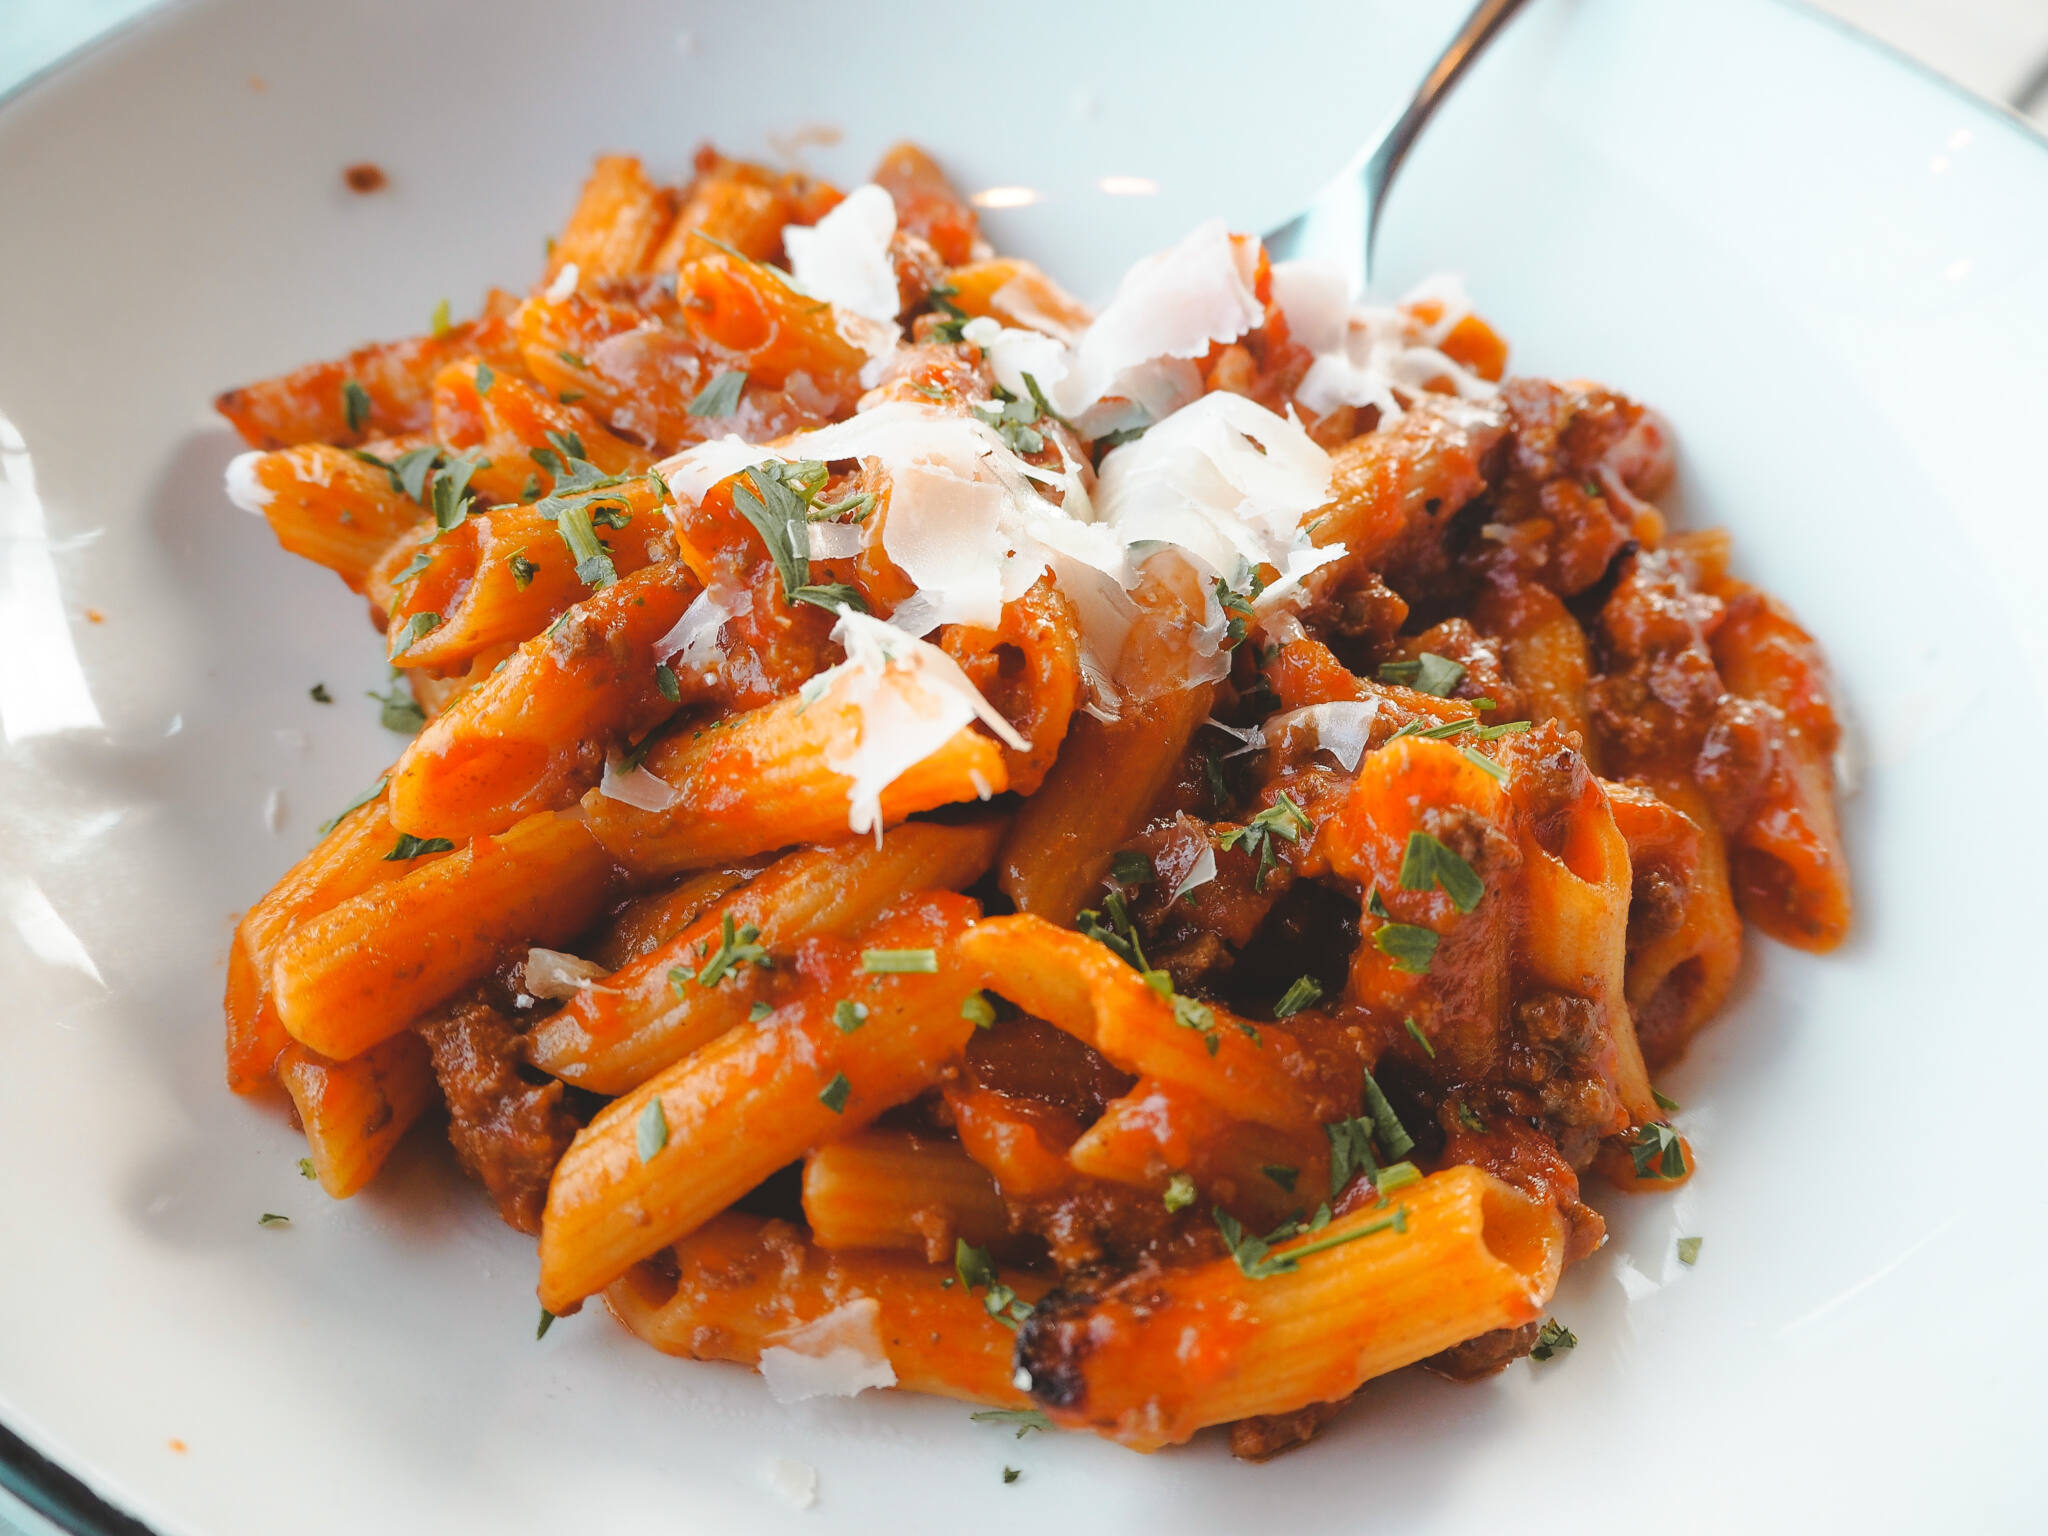 Penne bolognese pasta topped with cheese